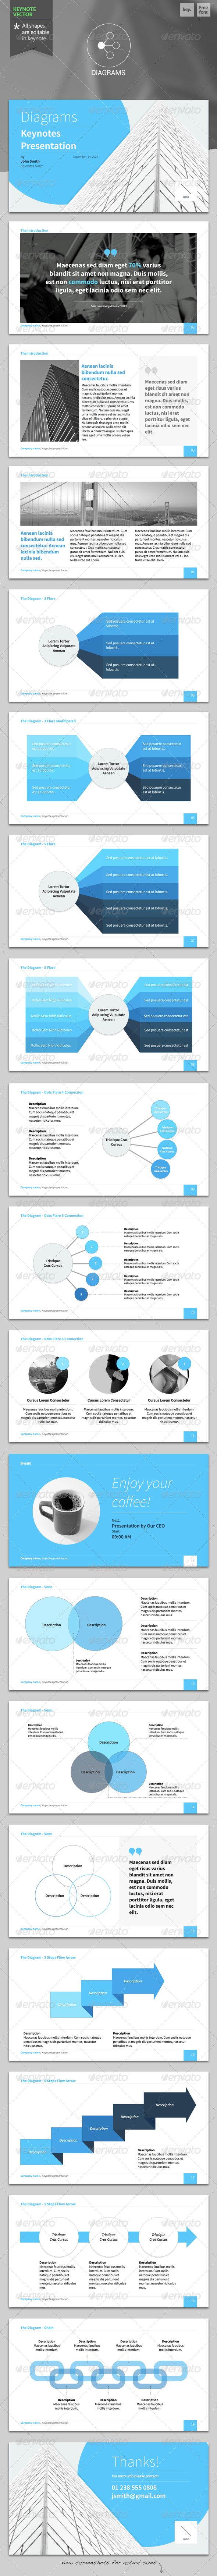 Diagrams - Keynote Template  #GraphicRiver               Shape your ideas into effective presentation!    This template designed to help you prepare an elegant presentation on your step by step planning, instantly.     Features:   Fully editable in keynote  Easy drag and drop to